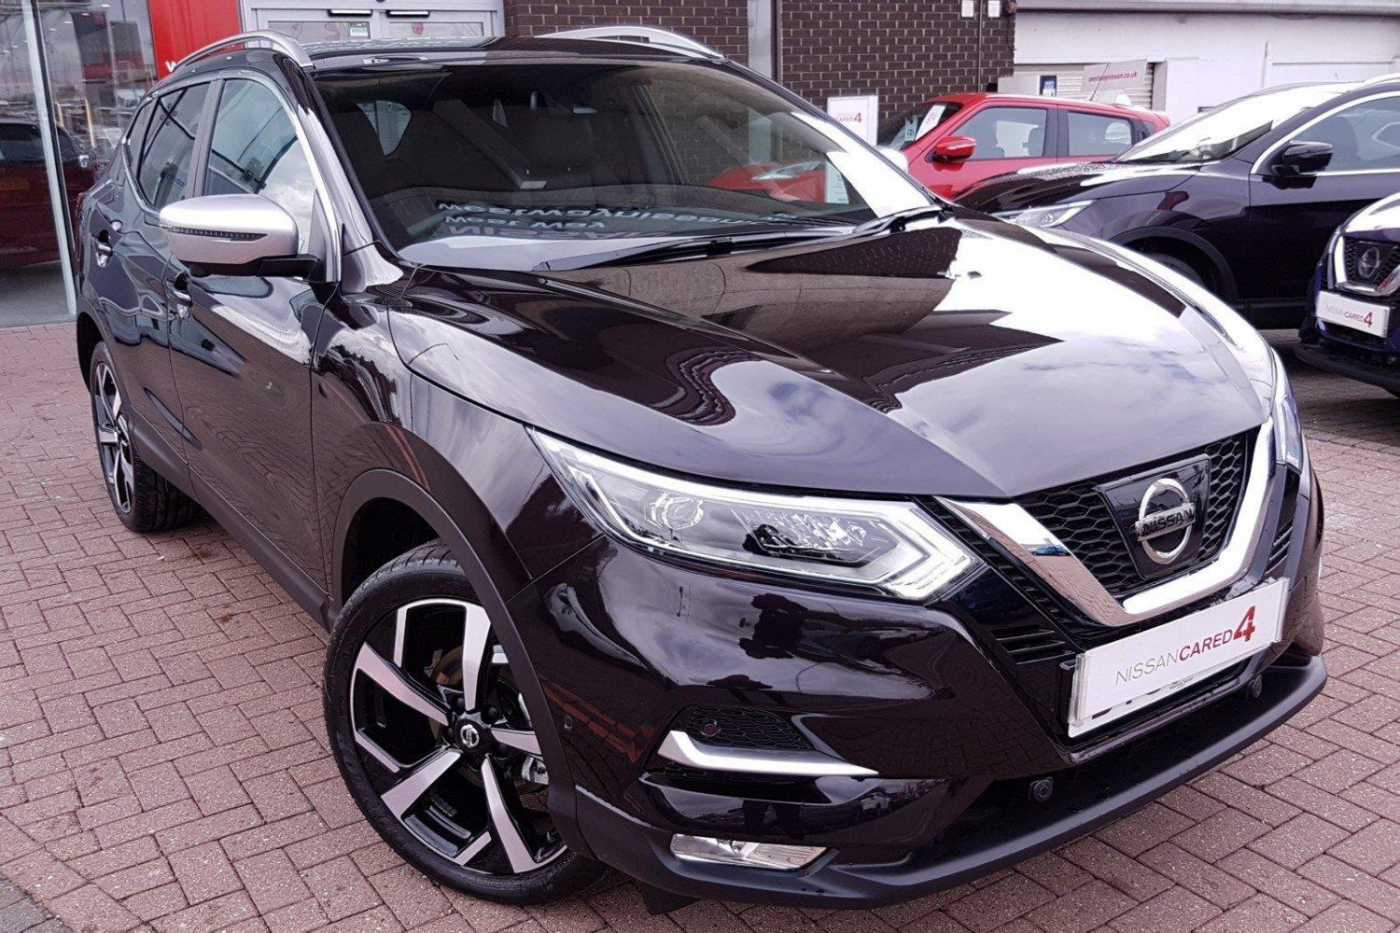 nissan qashqai black for sale in london nissan used cars. Black Bedroom Furniture Sets. Home Design Ideas